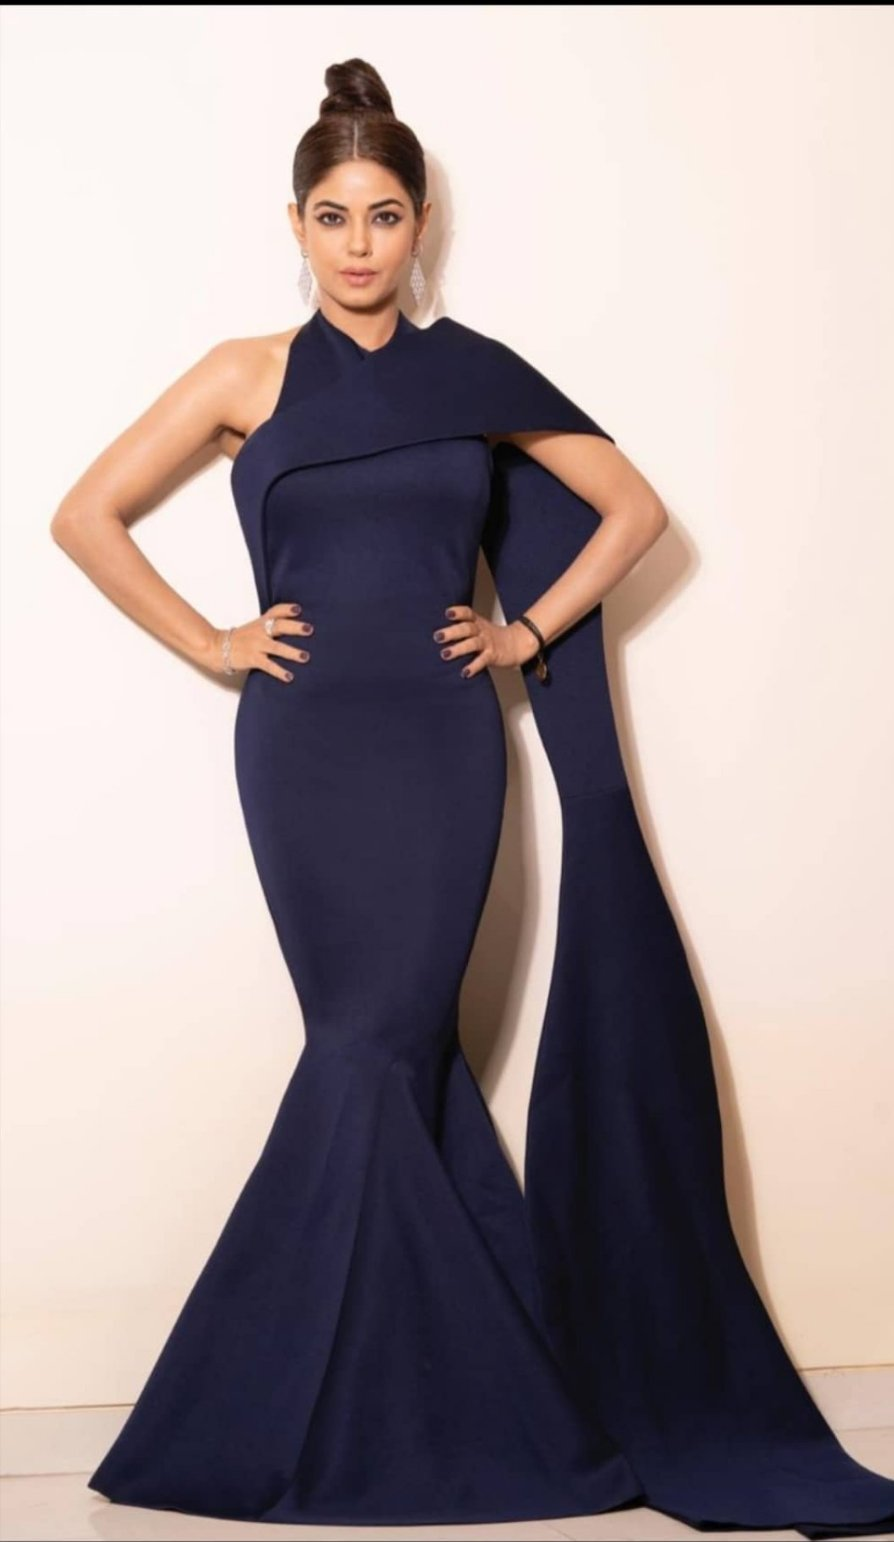 Meera Chopra - convertible saree gown